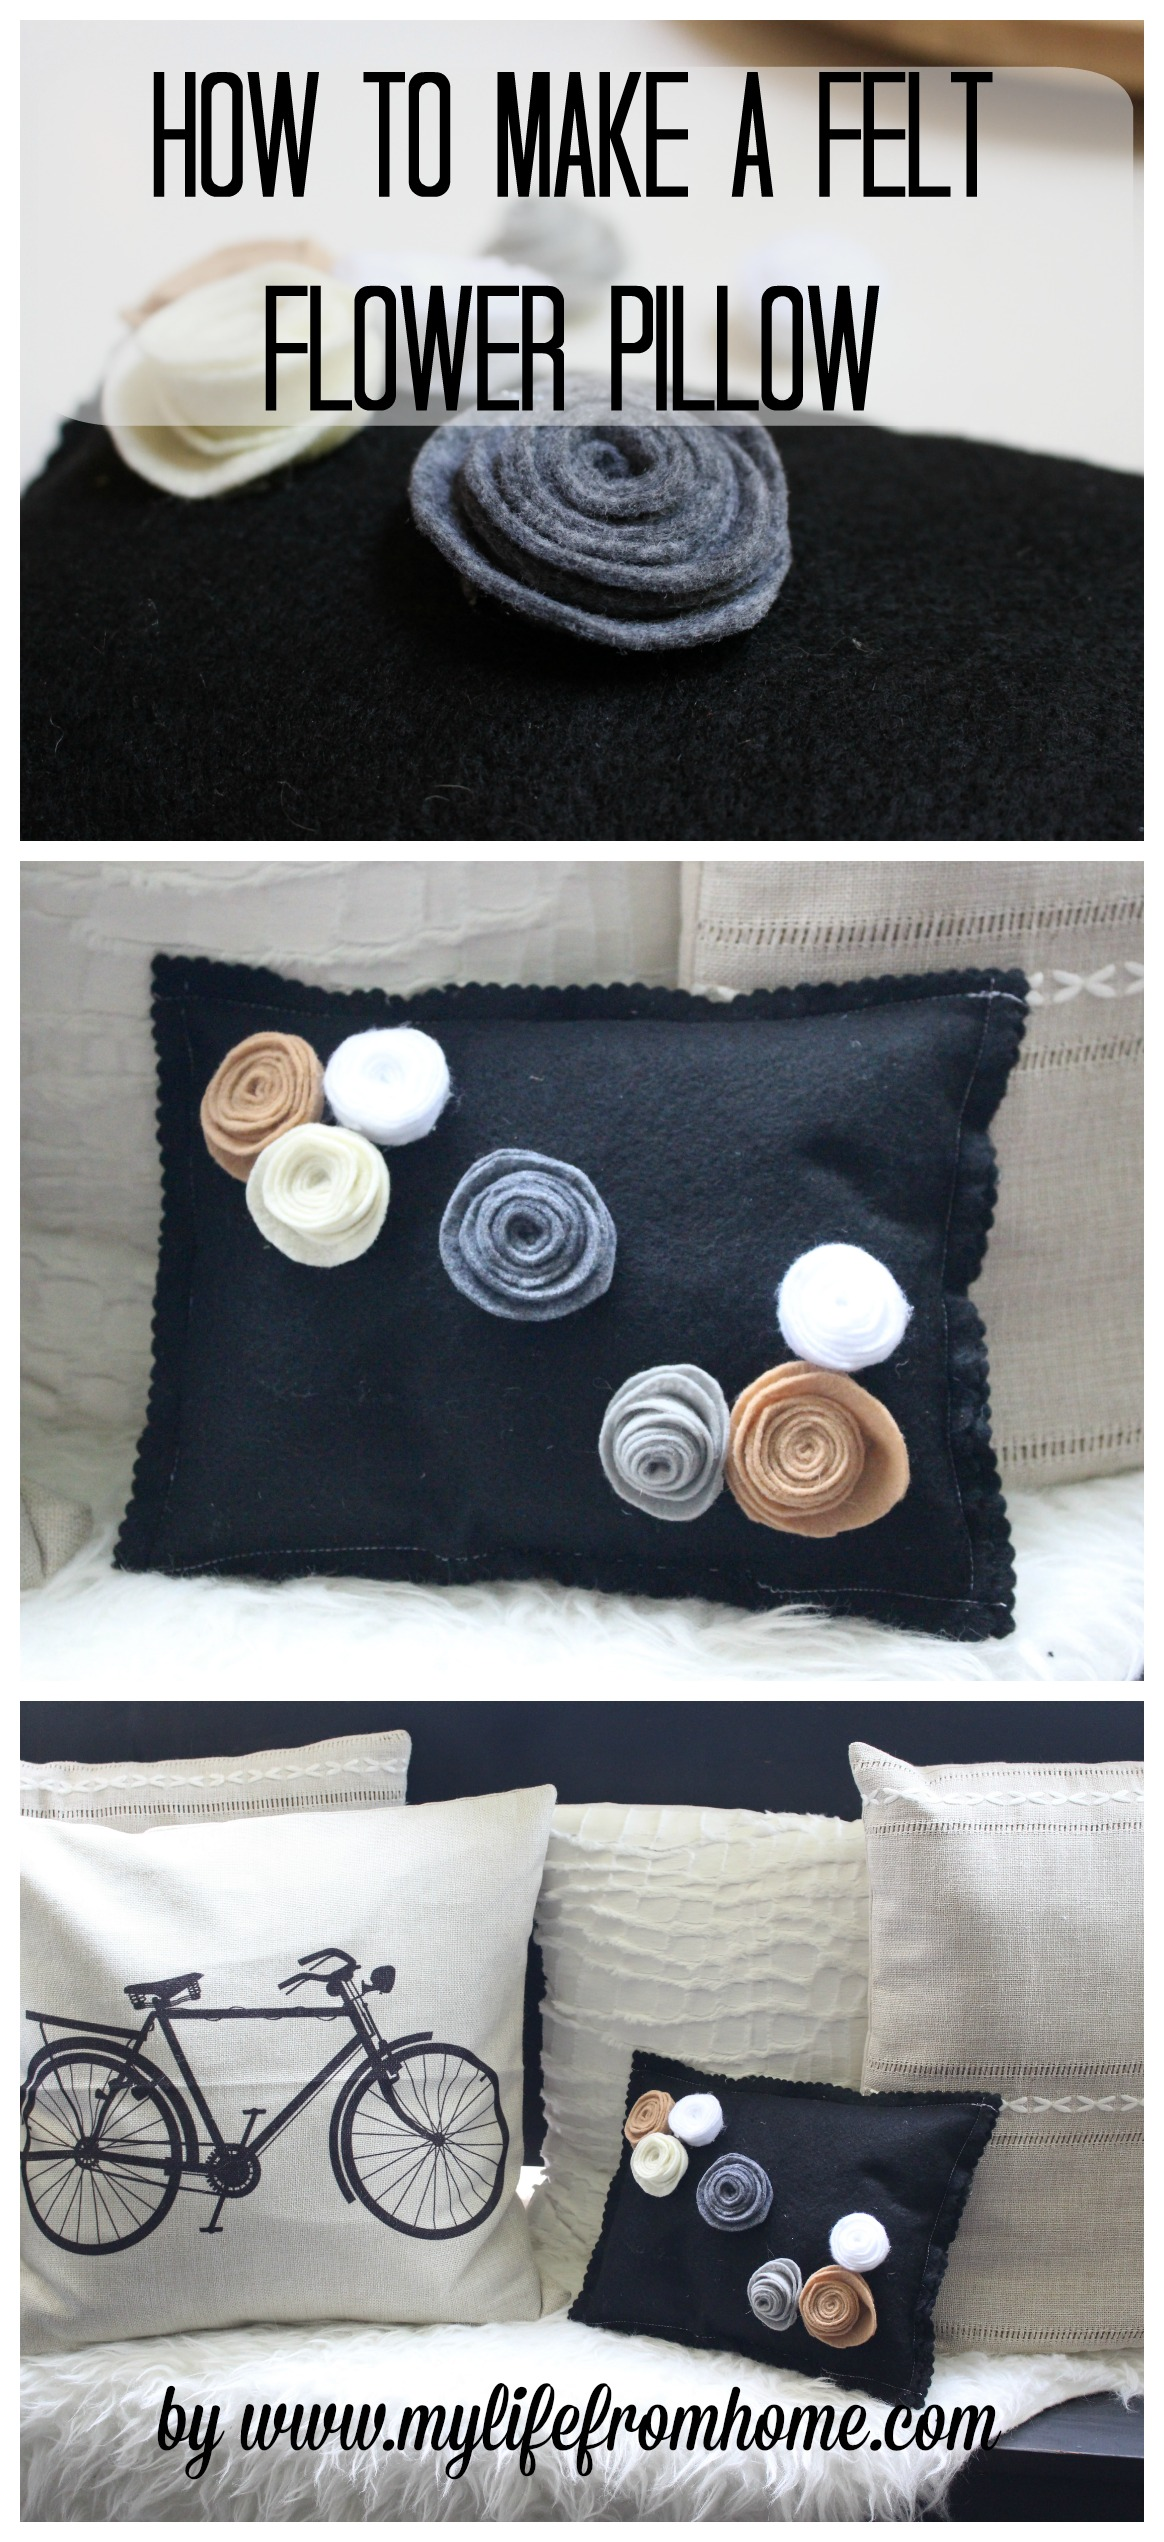 How to Make a Felt Flower Pillow by www.mylifefromhome.com